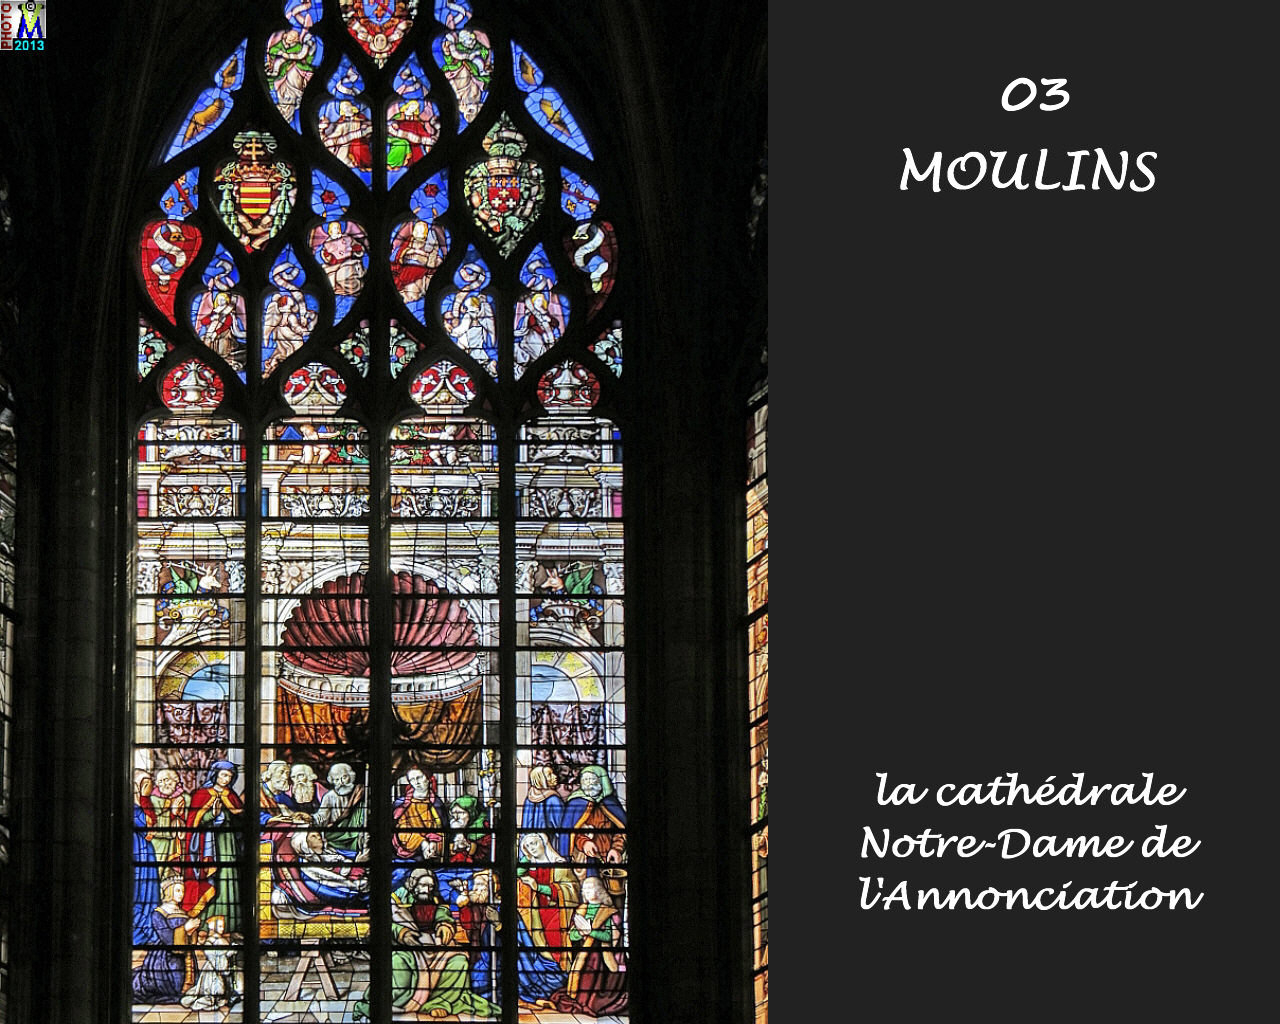 03MOULINS_cathedrale_214.jpg